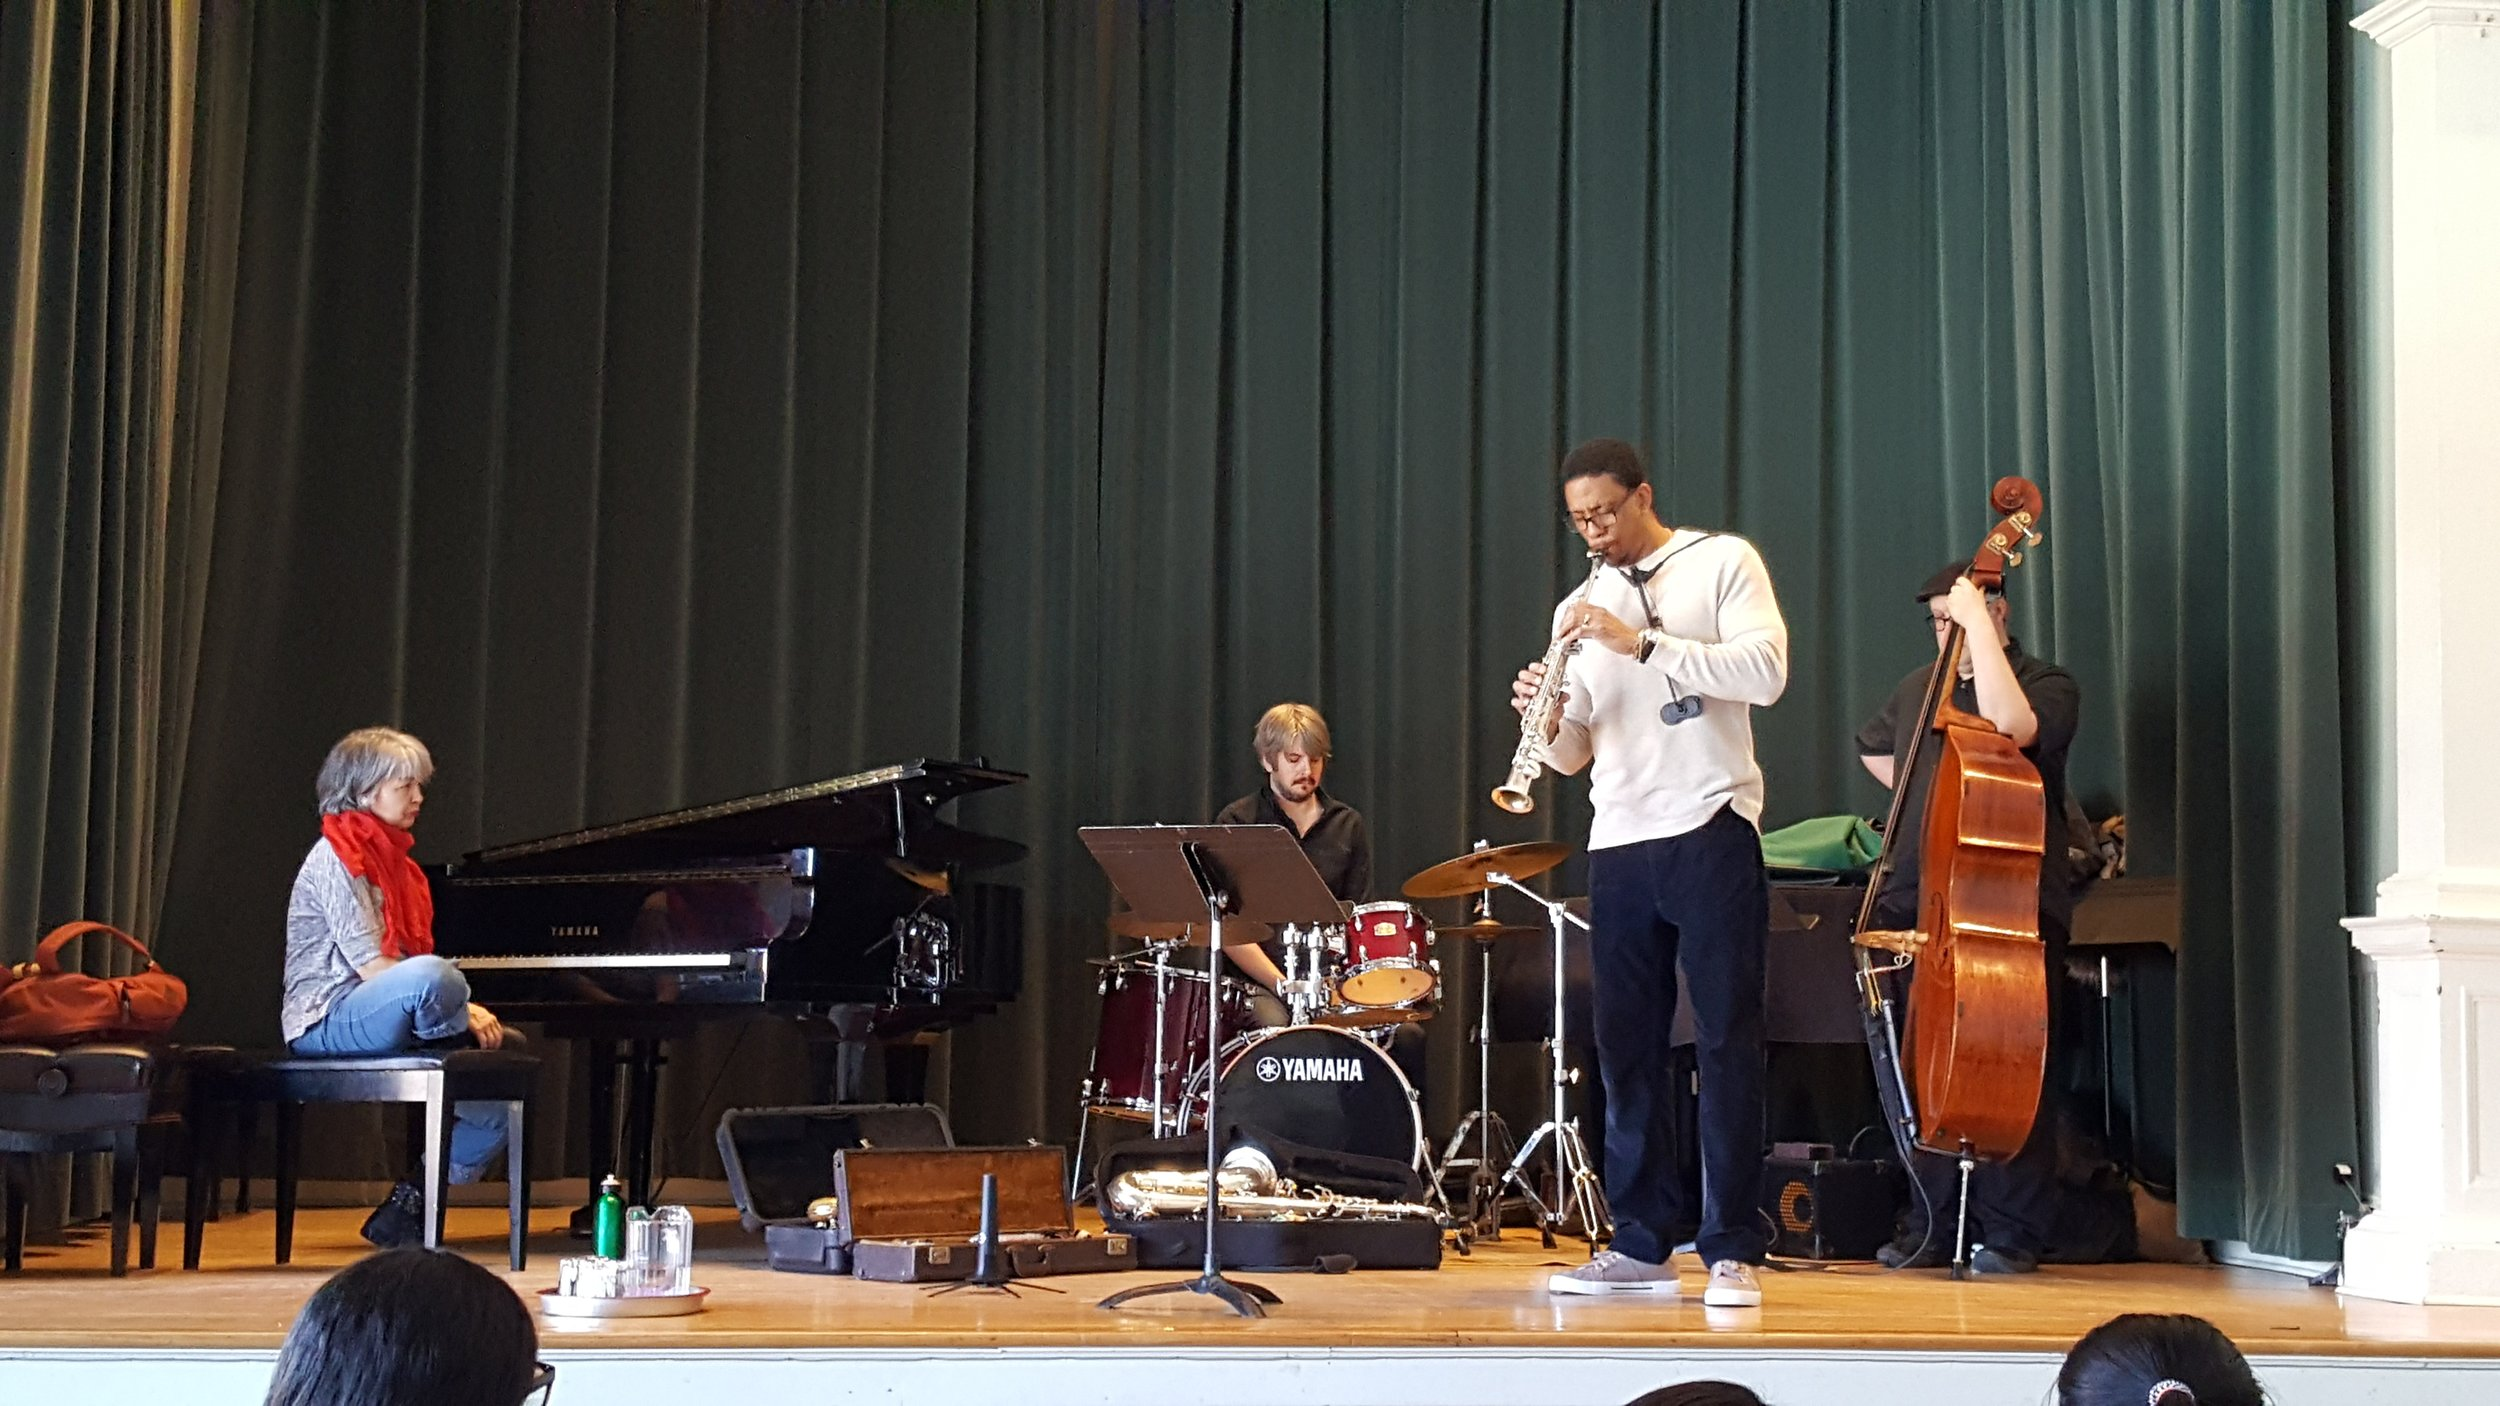 Jazz workshop with Carlos Baez, Holly Arsenault, Lukas Pearse, and Damien Moynihan at Woodwinds and Brass Chamber Day, Feb. 23, 2019